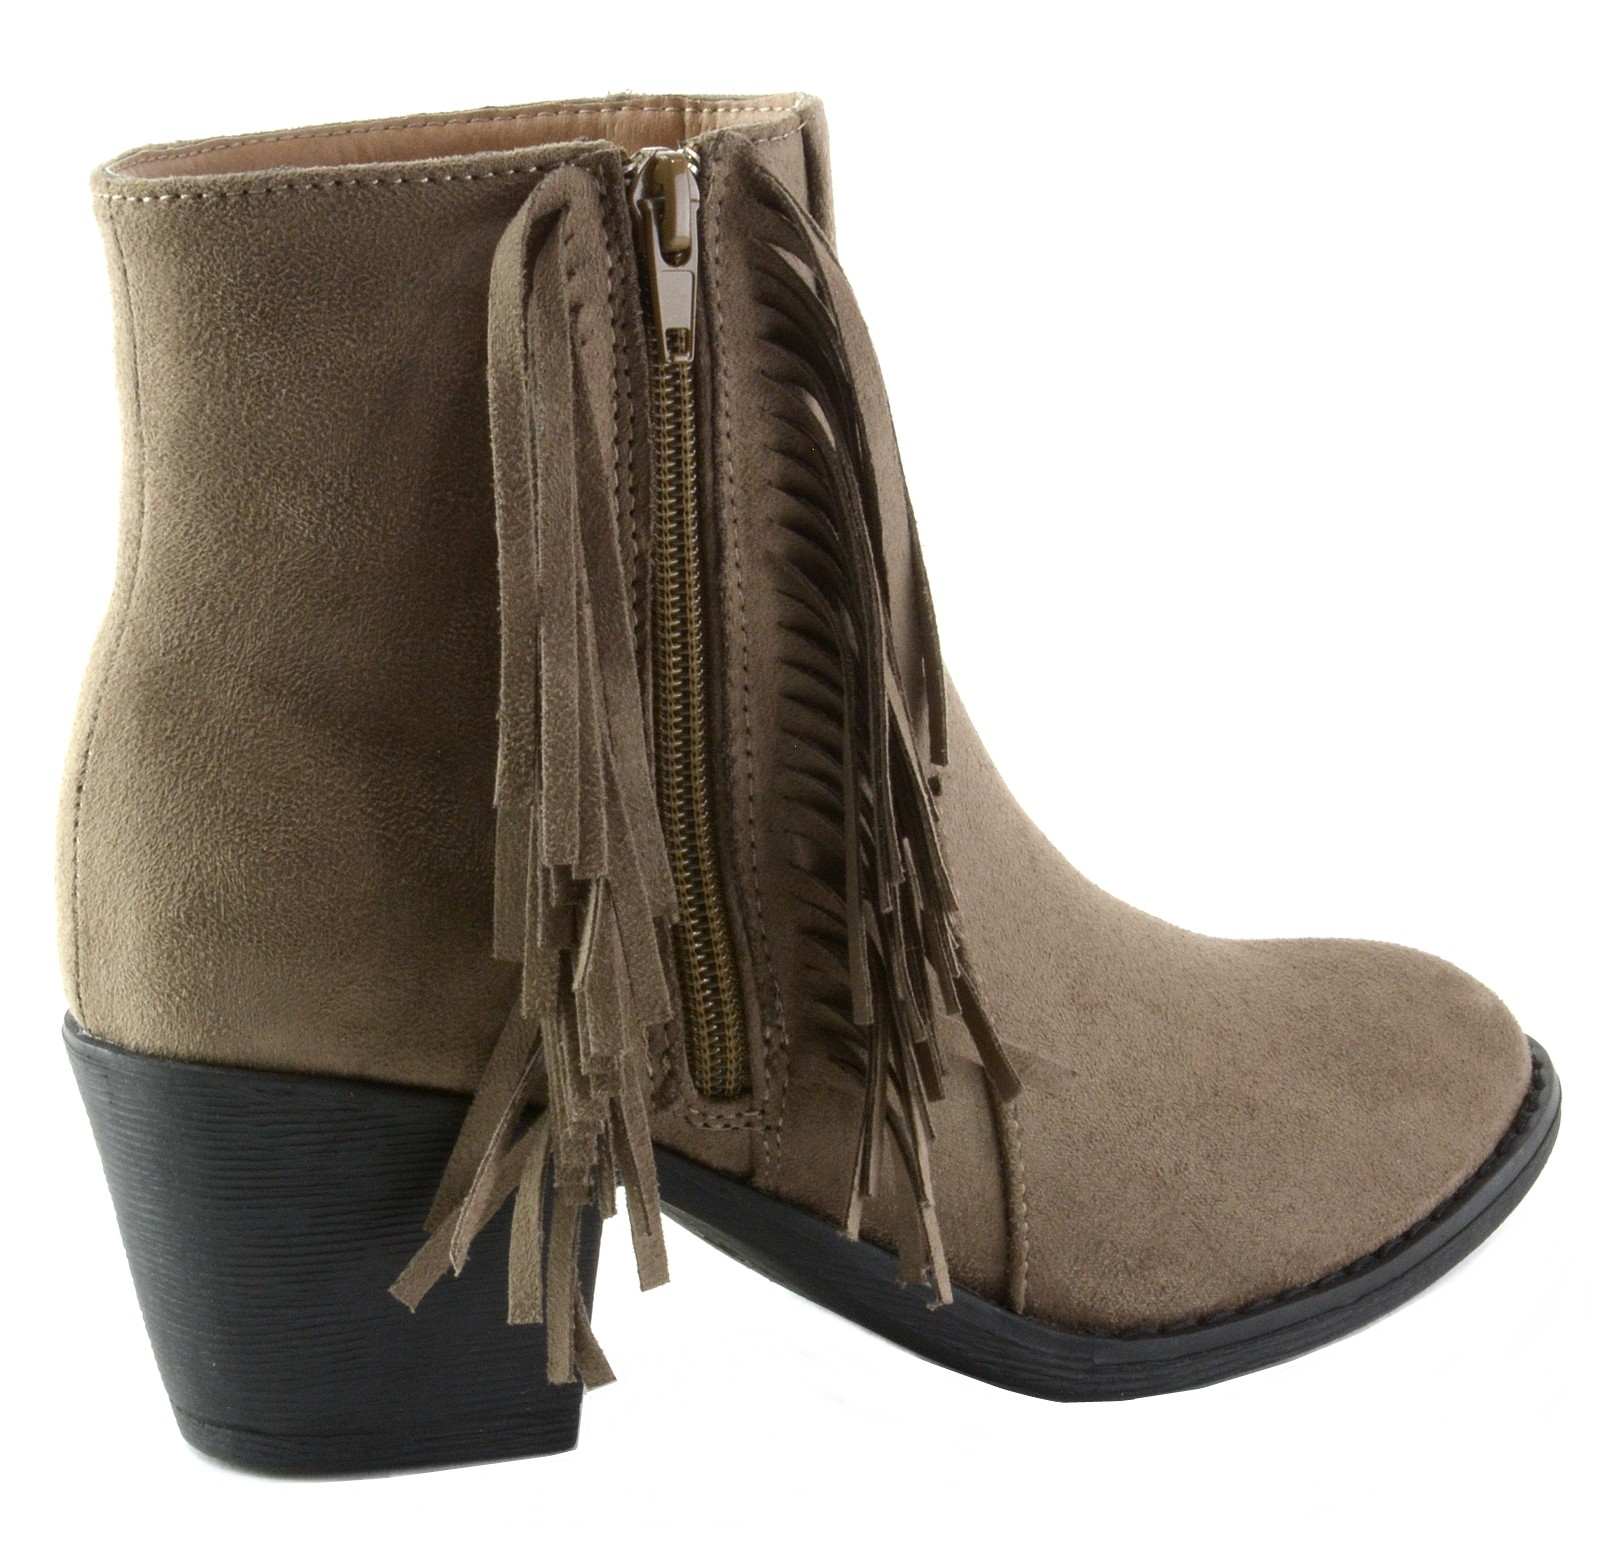 Alpine-Swiss-Arosa-Womens-Ankle-Boots-Fringe-Shoes-Block-High-Heel-Micro-Suede thumbnail 22